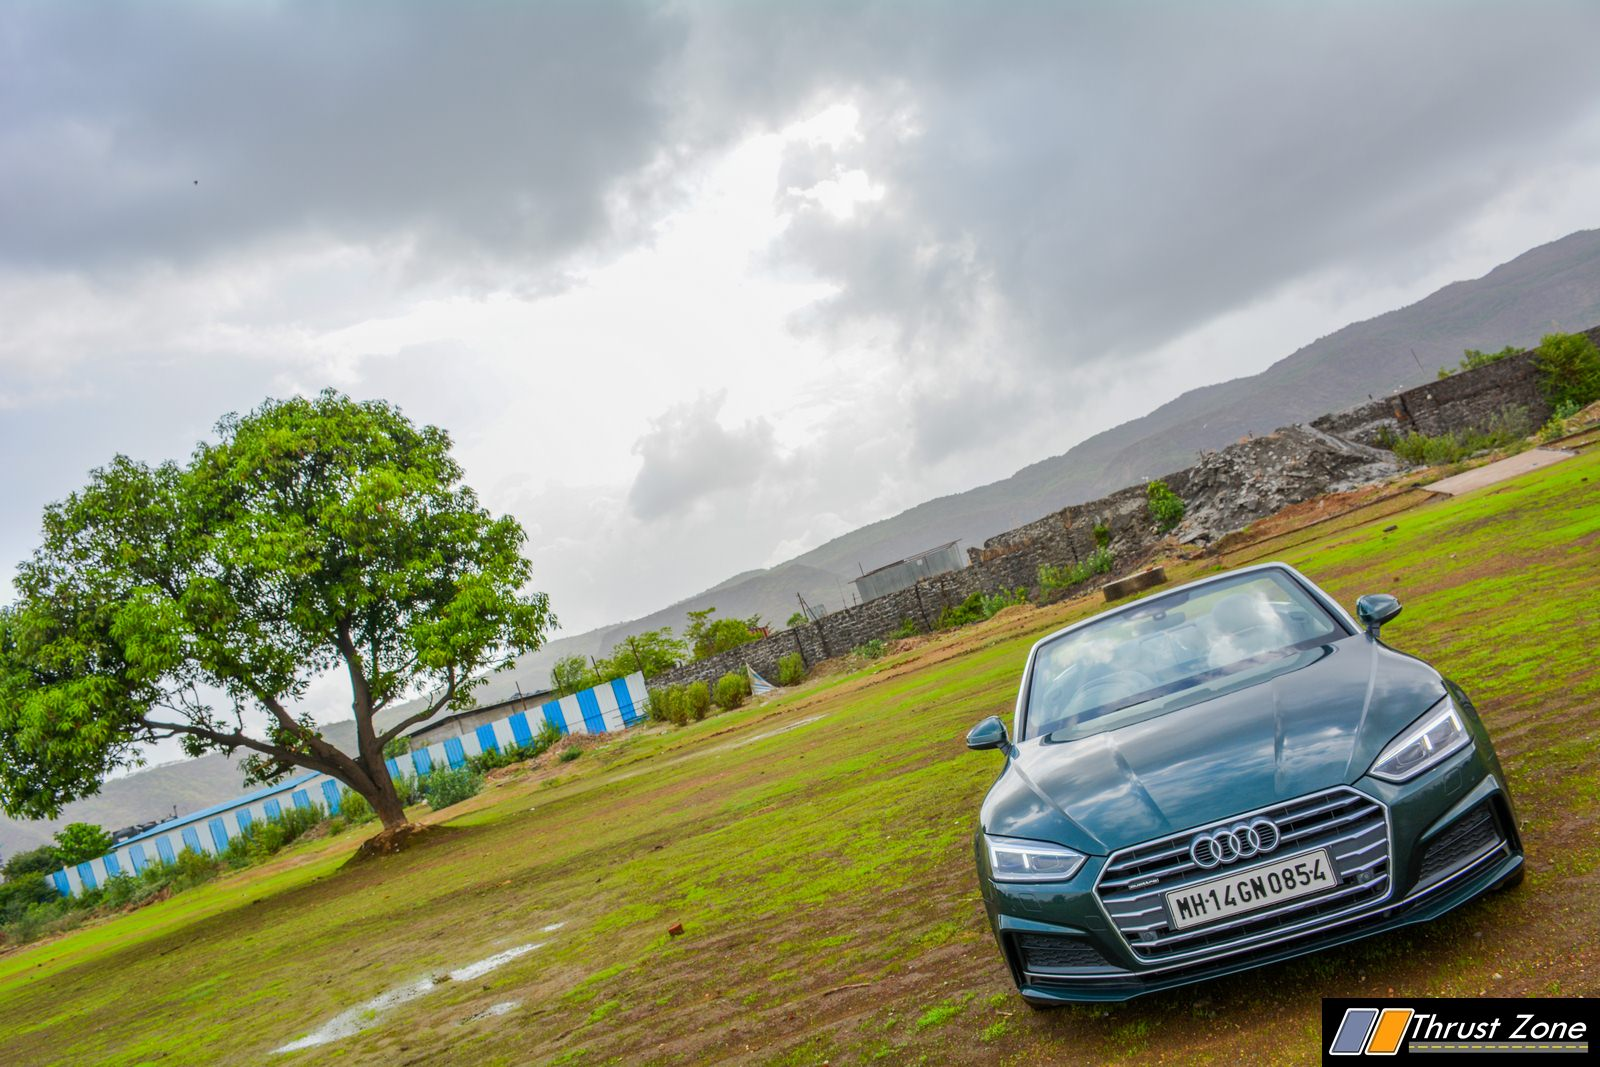 https://www.thrustzone.com/wp-content/uploads/2019/06/2019-Audi-A5-Cabriolet-Convertible-India-Diesel-Review-22.jpg